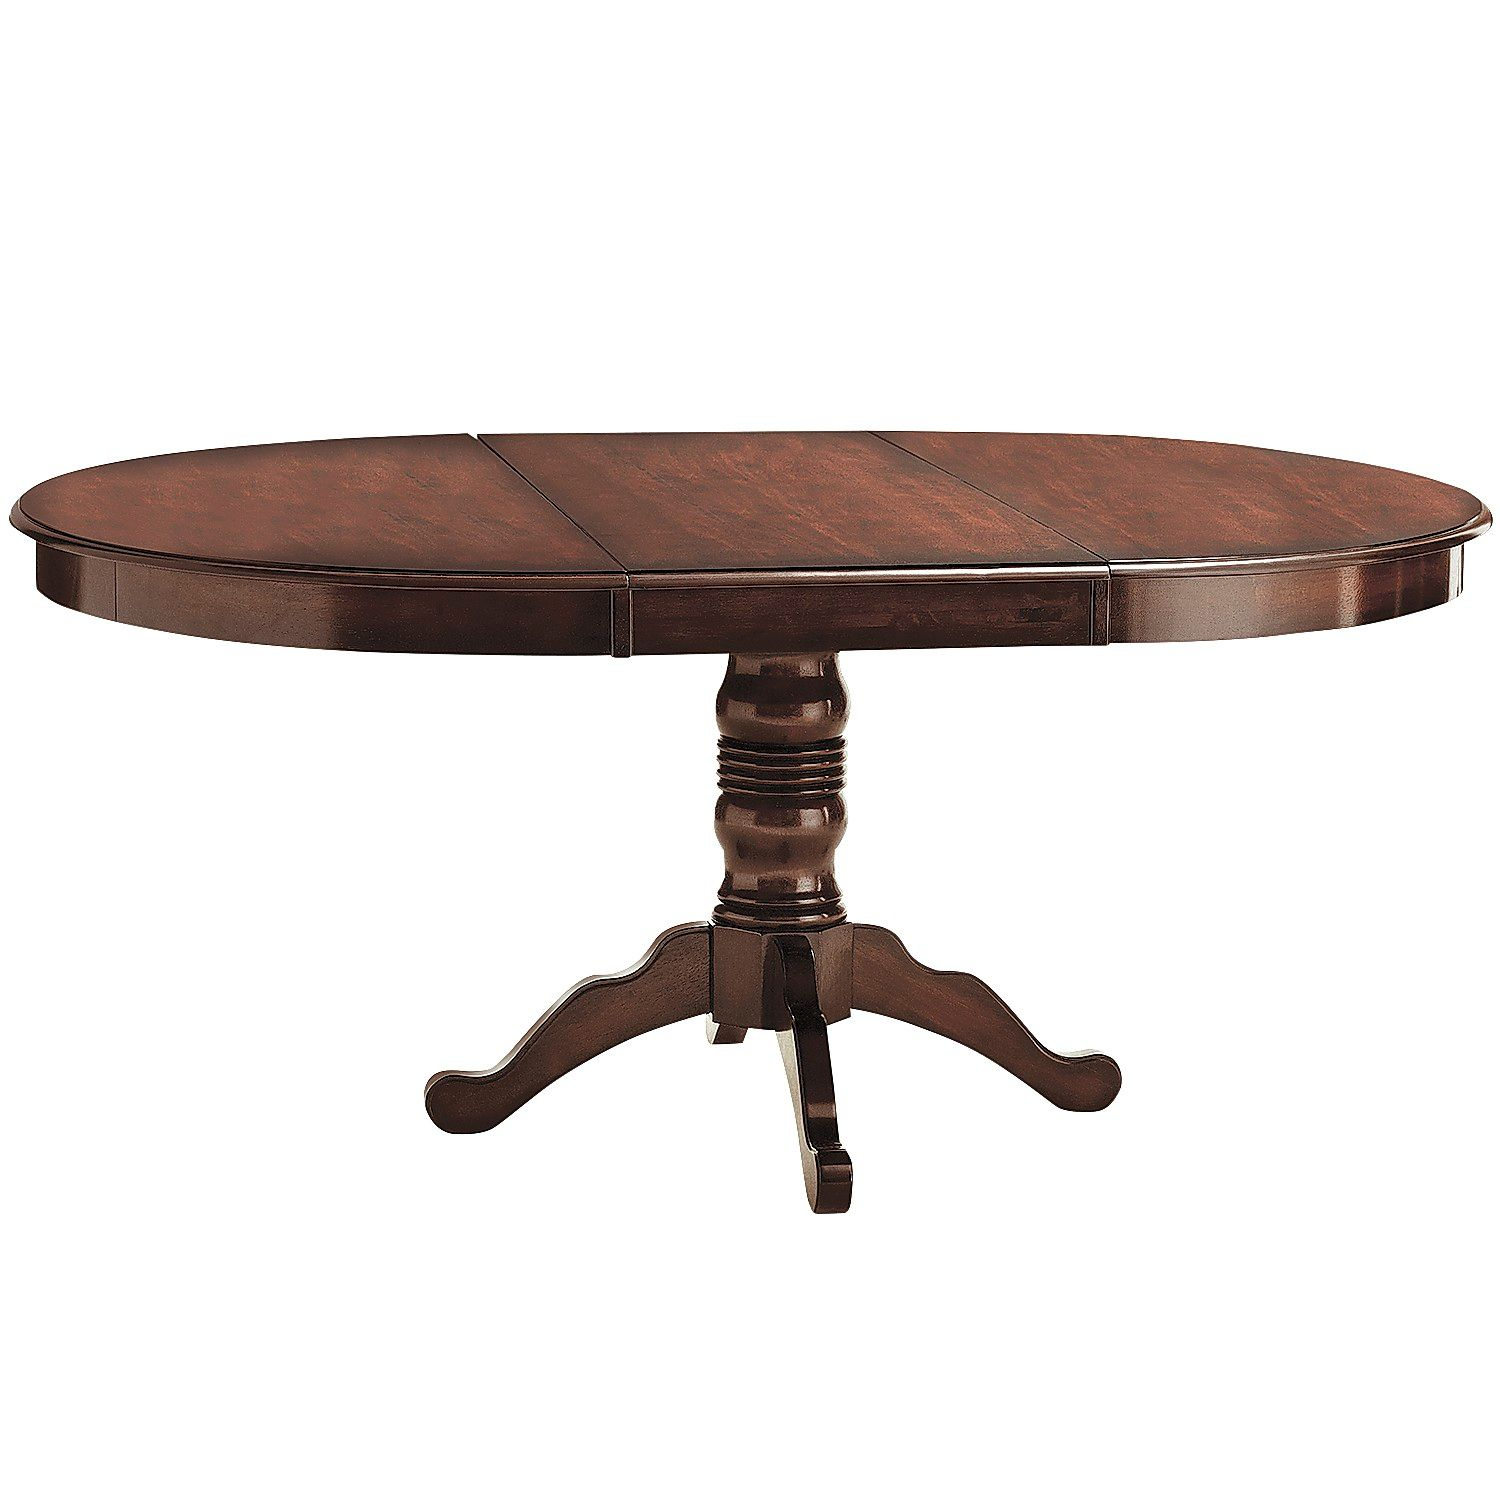 ronan extension tobacco brown dining table pier imports accent collections collection bedding with matching curtains ashley furniture lamps clearance high round upholstered chairs